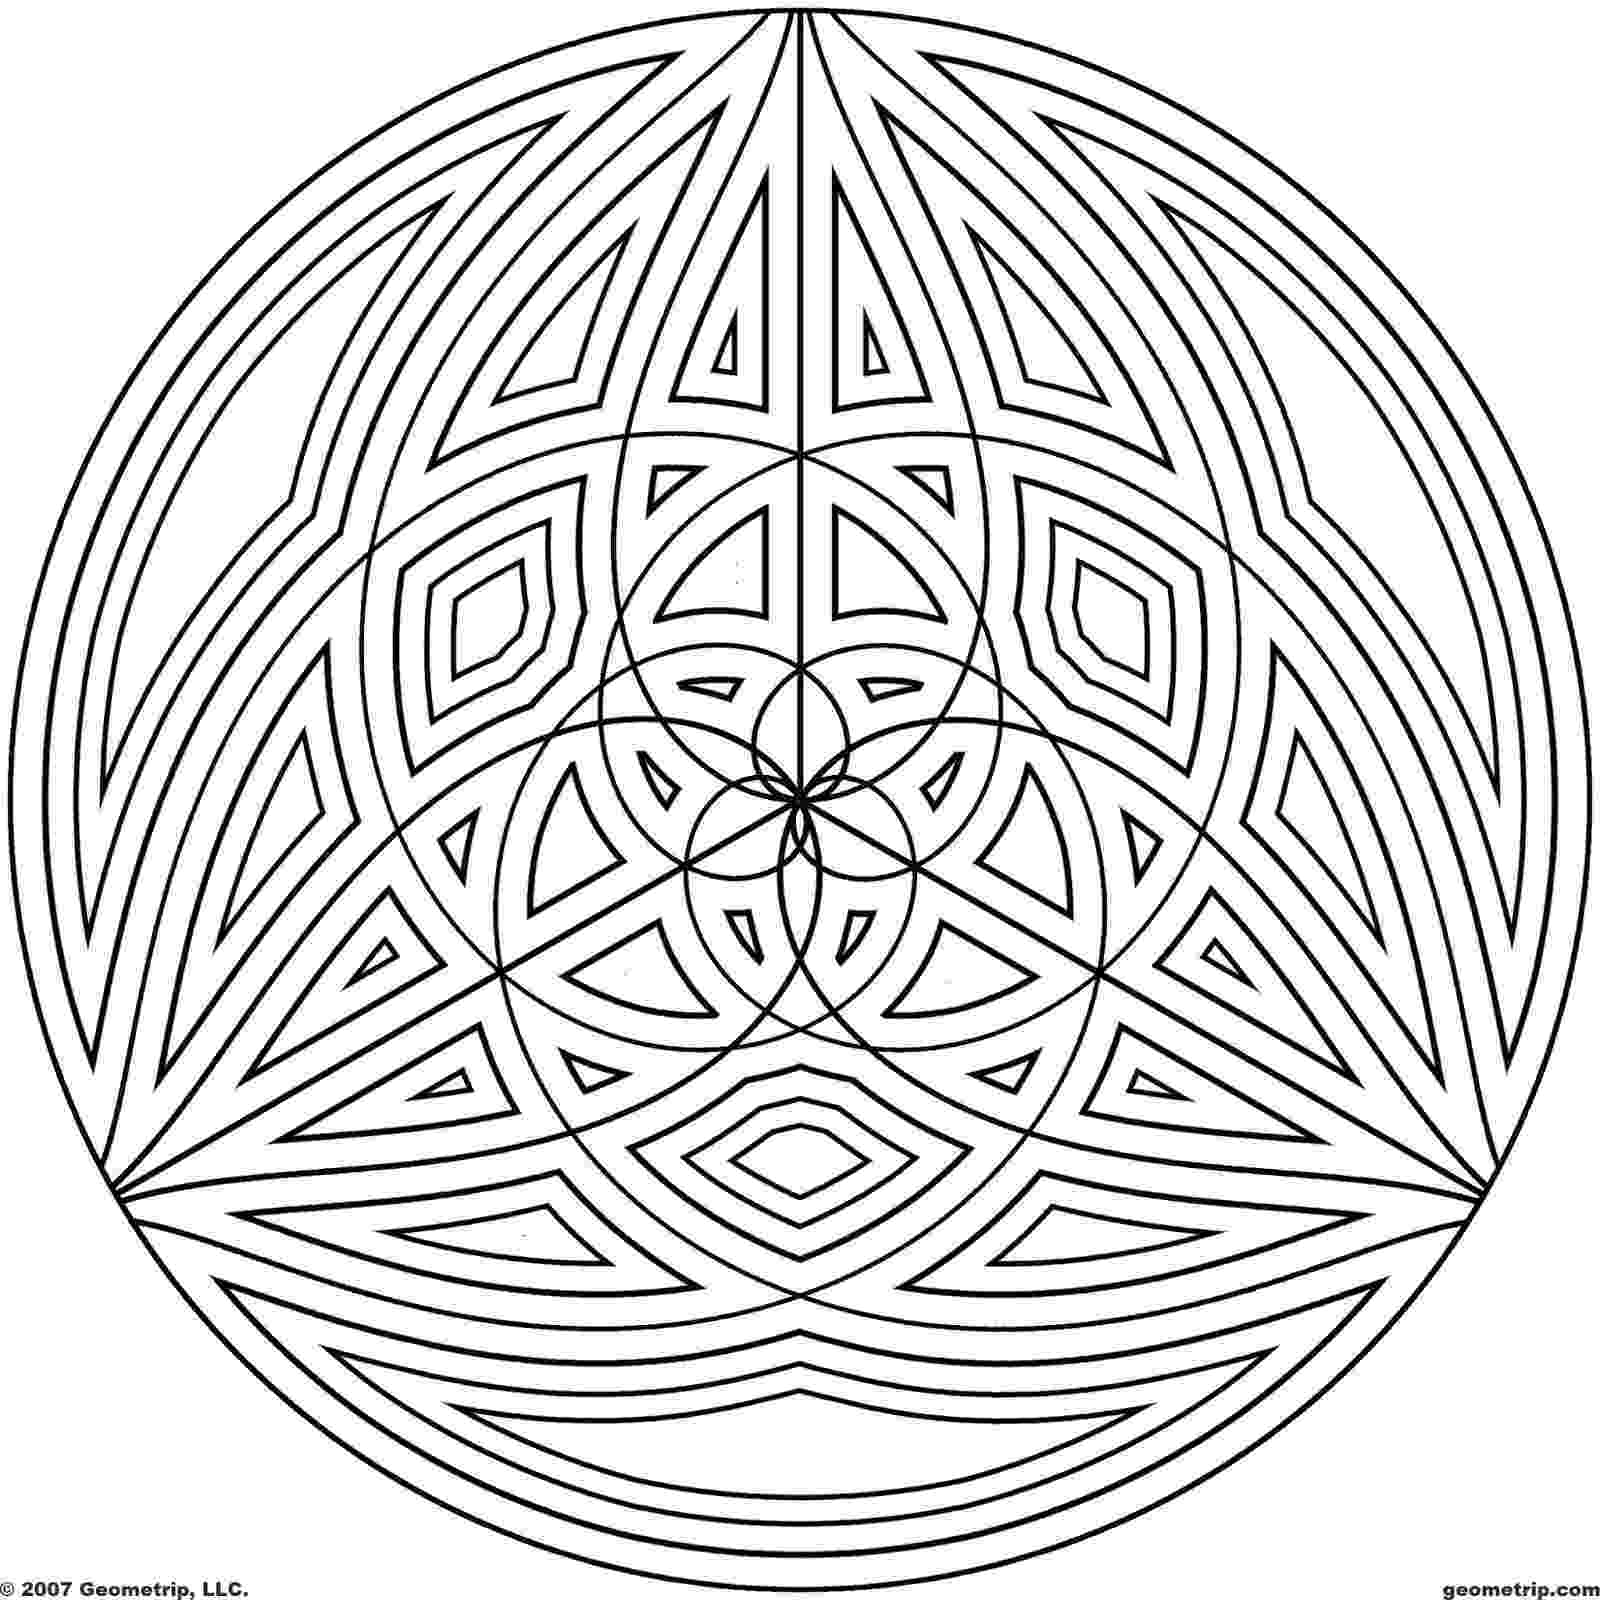 fun designs to color coloring pages hard designs coloring home color designs fun to